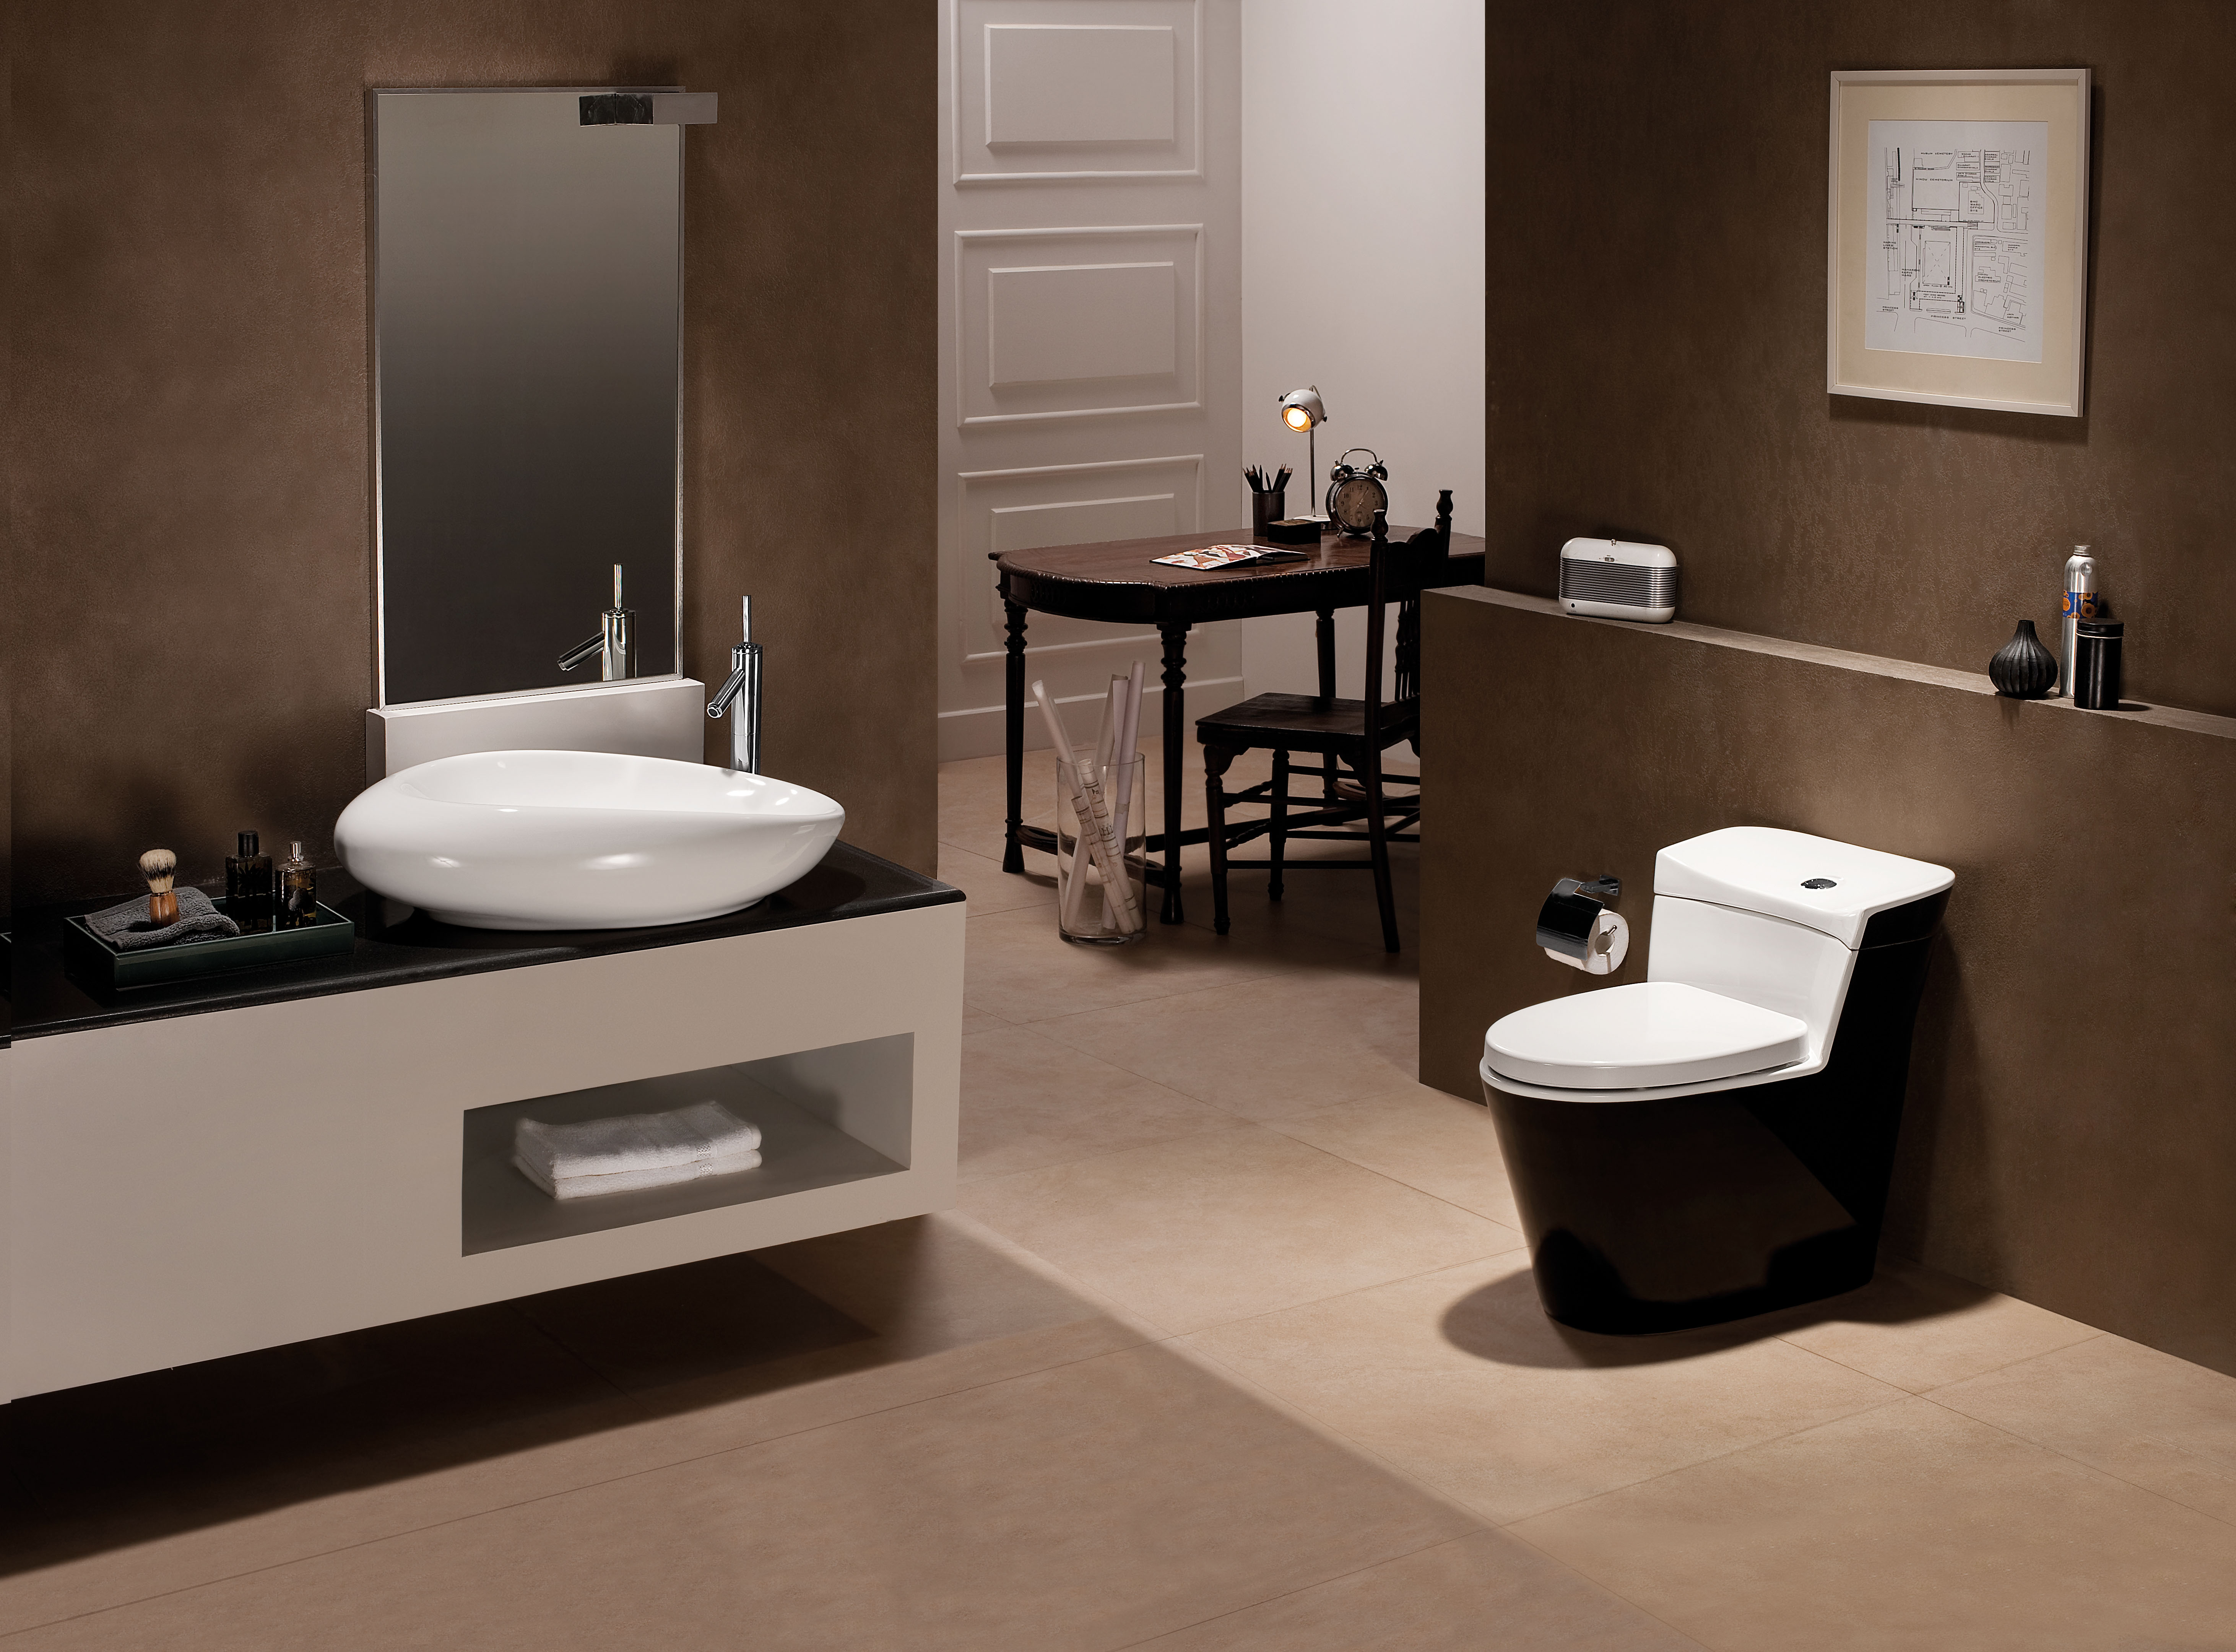 Jaquar world complete bathroom destination showroom for sa - Bathroom fitting brands in india ...